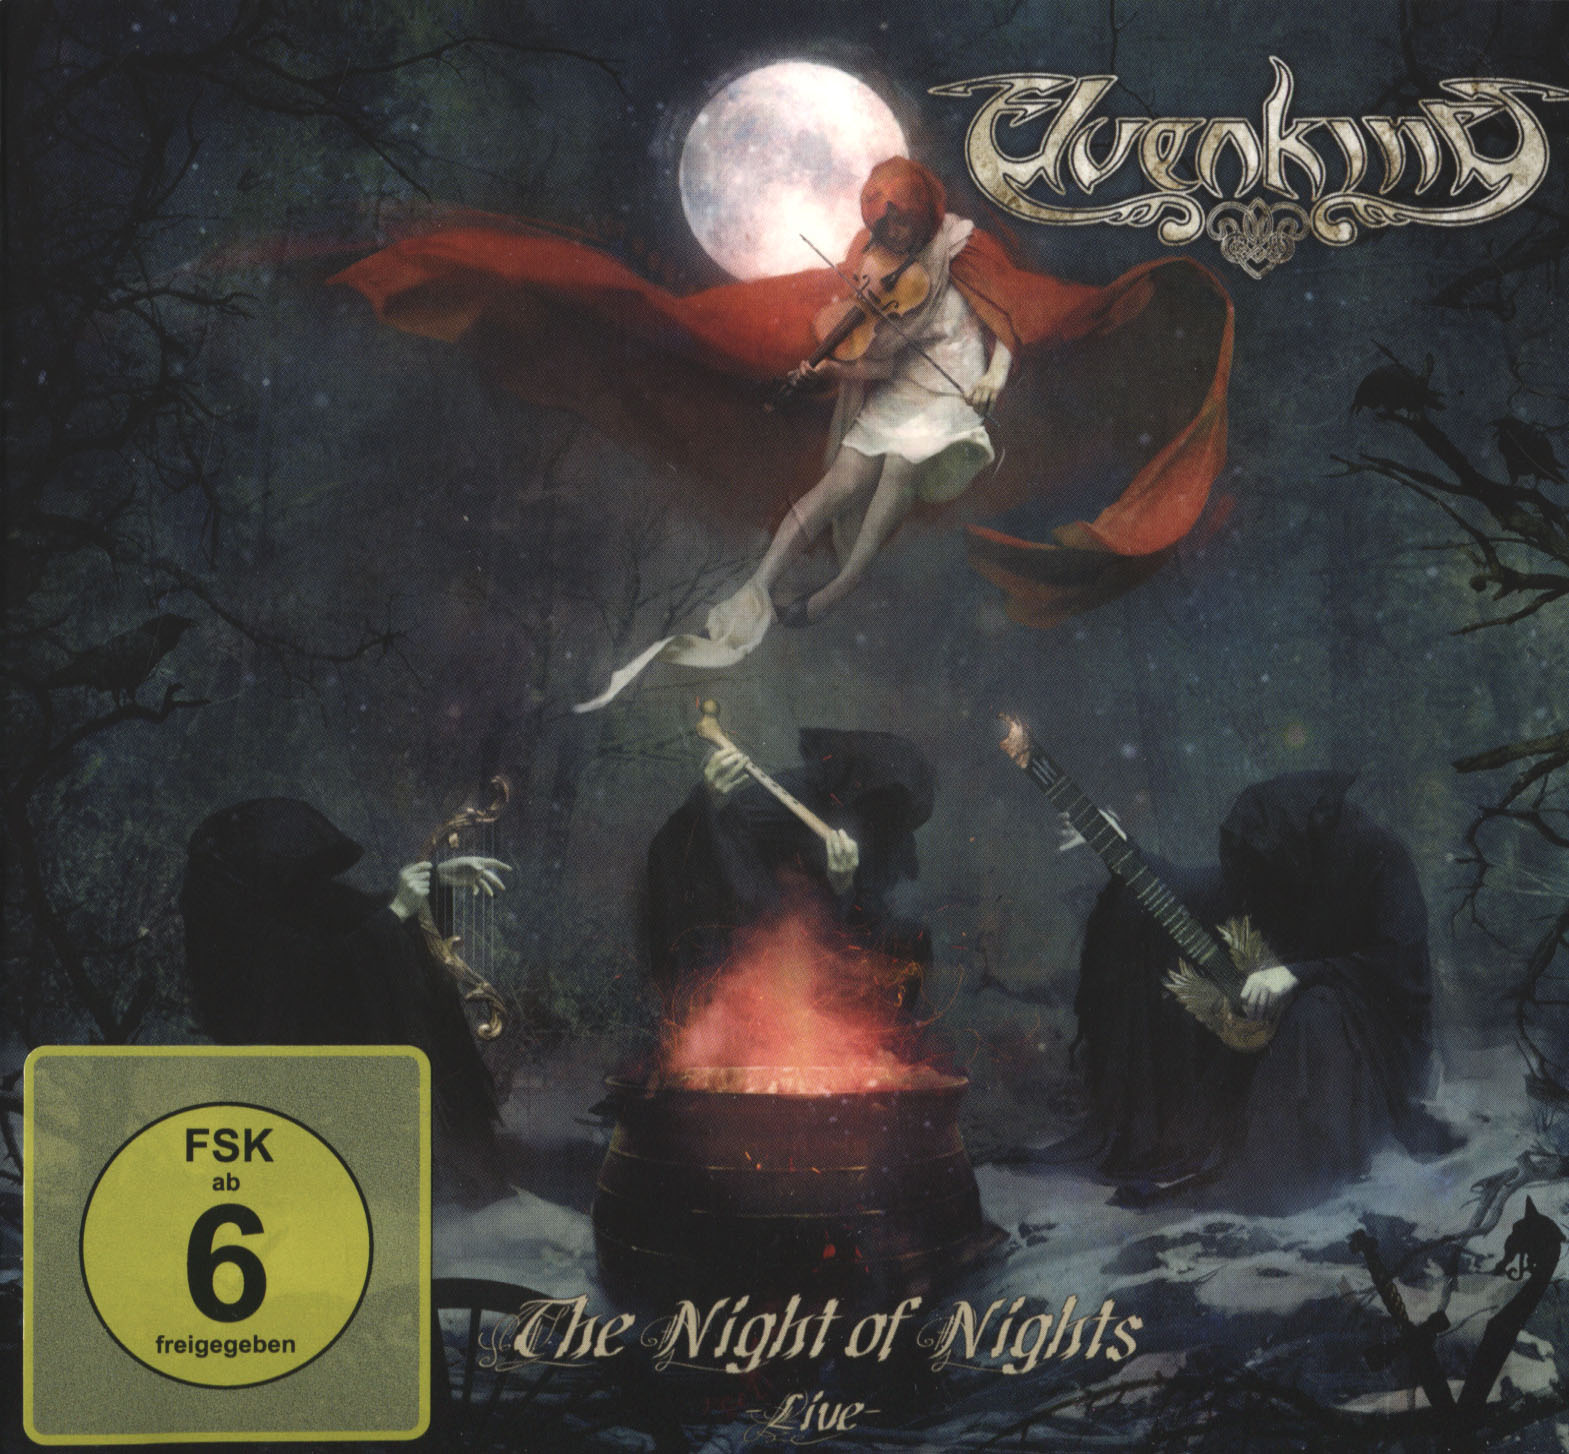 Elvenking: The Night of Nights - Live